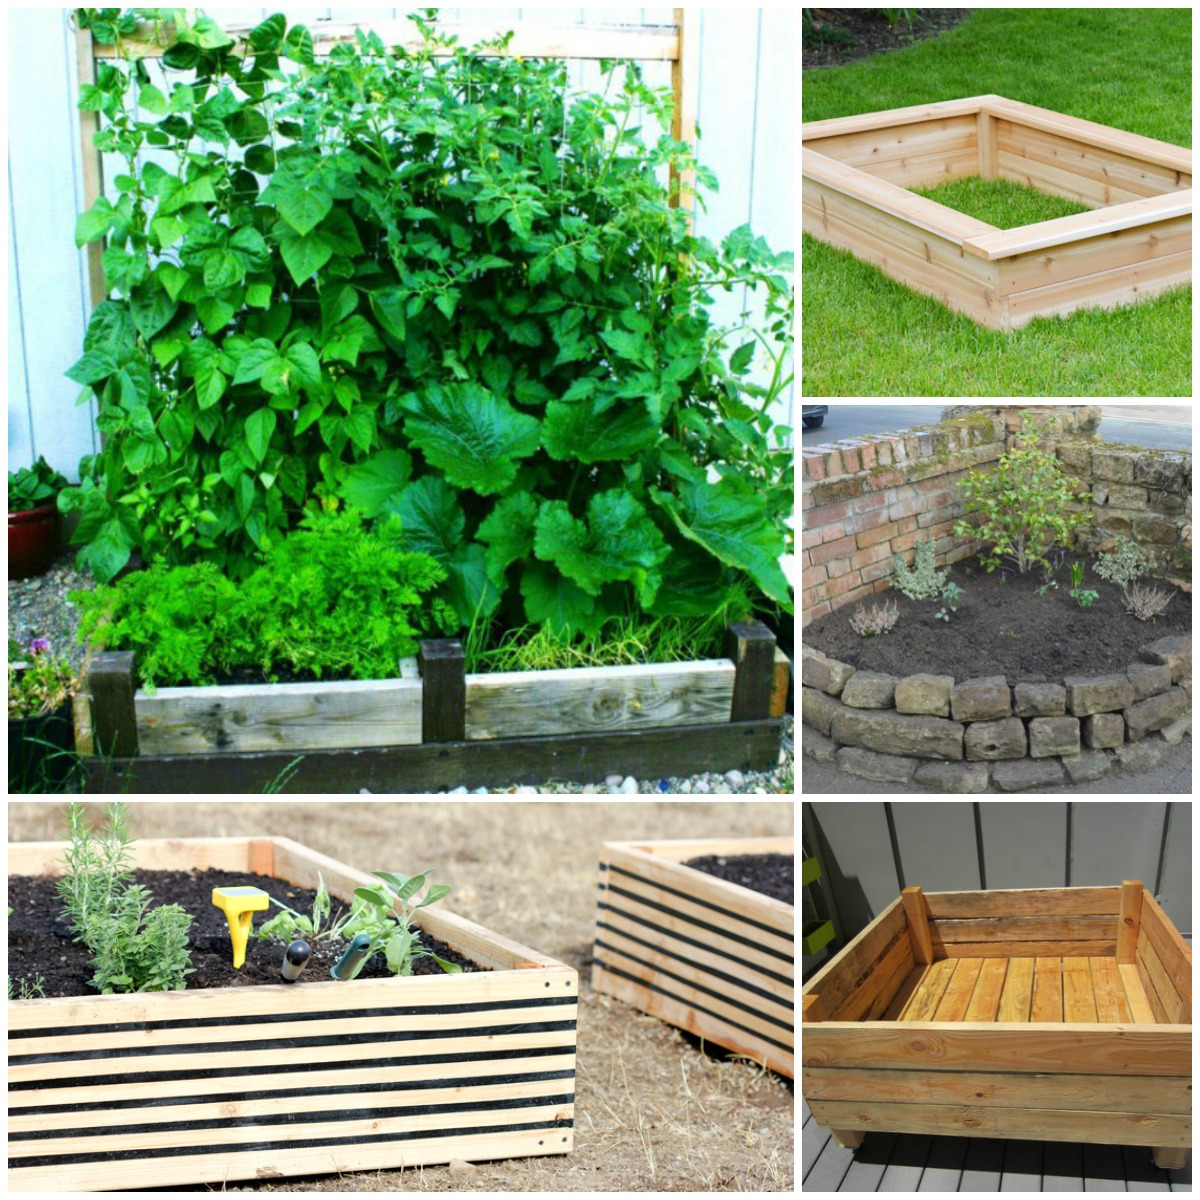 20 Brilliant Raised Garden Bed Ideas You Can Make In A ... on vegetable garden fence ideas, raised garden on hill, vegetable garden trellis ideas, raised garden fence design, raised garden with fountain, best vegetable container ideas, raised garden wall ideas, raised vegetable beds, small garden ideas, vegetables in flower garden ideas, raised vegetable gardens for beginners, landscape design ideas, raised container gardens ideas, flower bed design ideas, cute vegetable garden ideas, garden beds on sloped backyards ideas, landscape vegetable ideas, raised garden planter boxes ideas, raised veggie garden ideas, cool fall garden ideas,